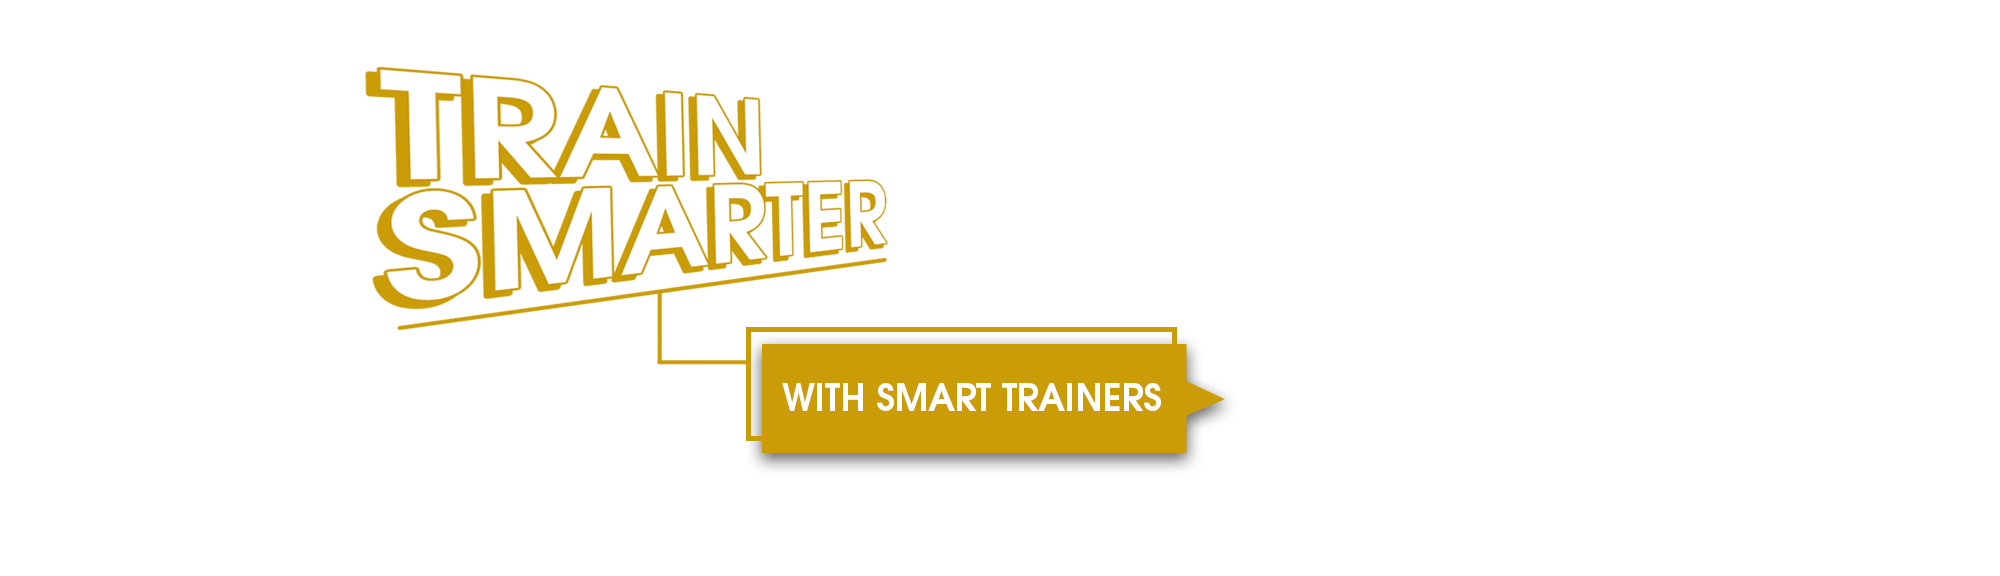 Train smarter with smart trainers